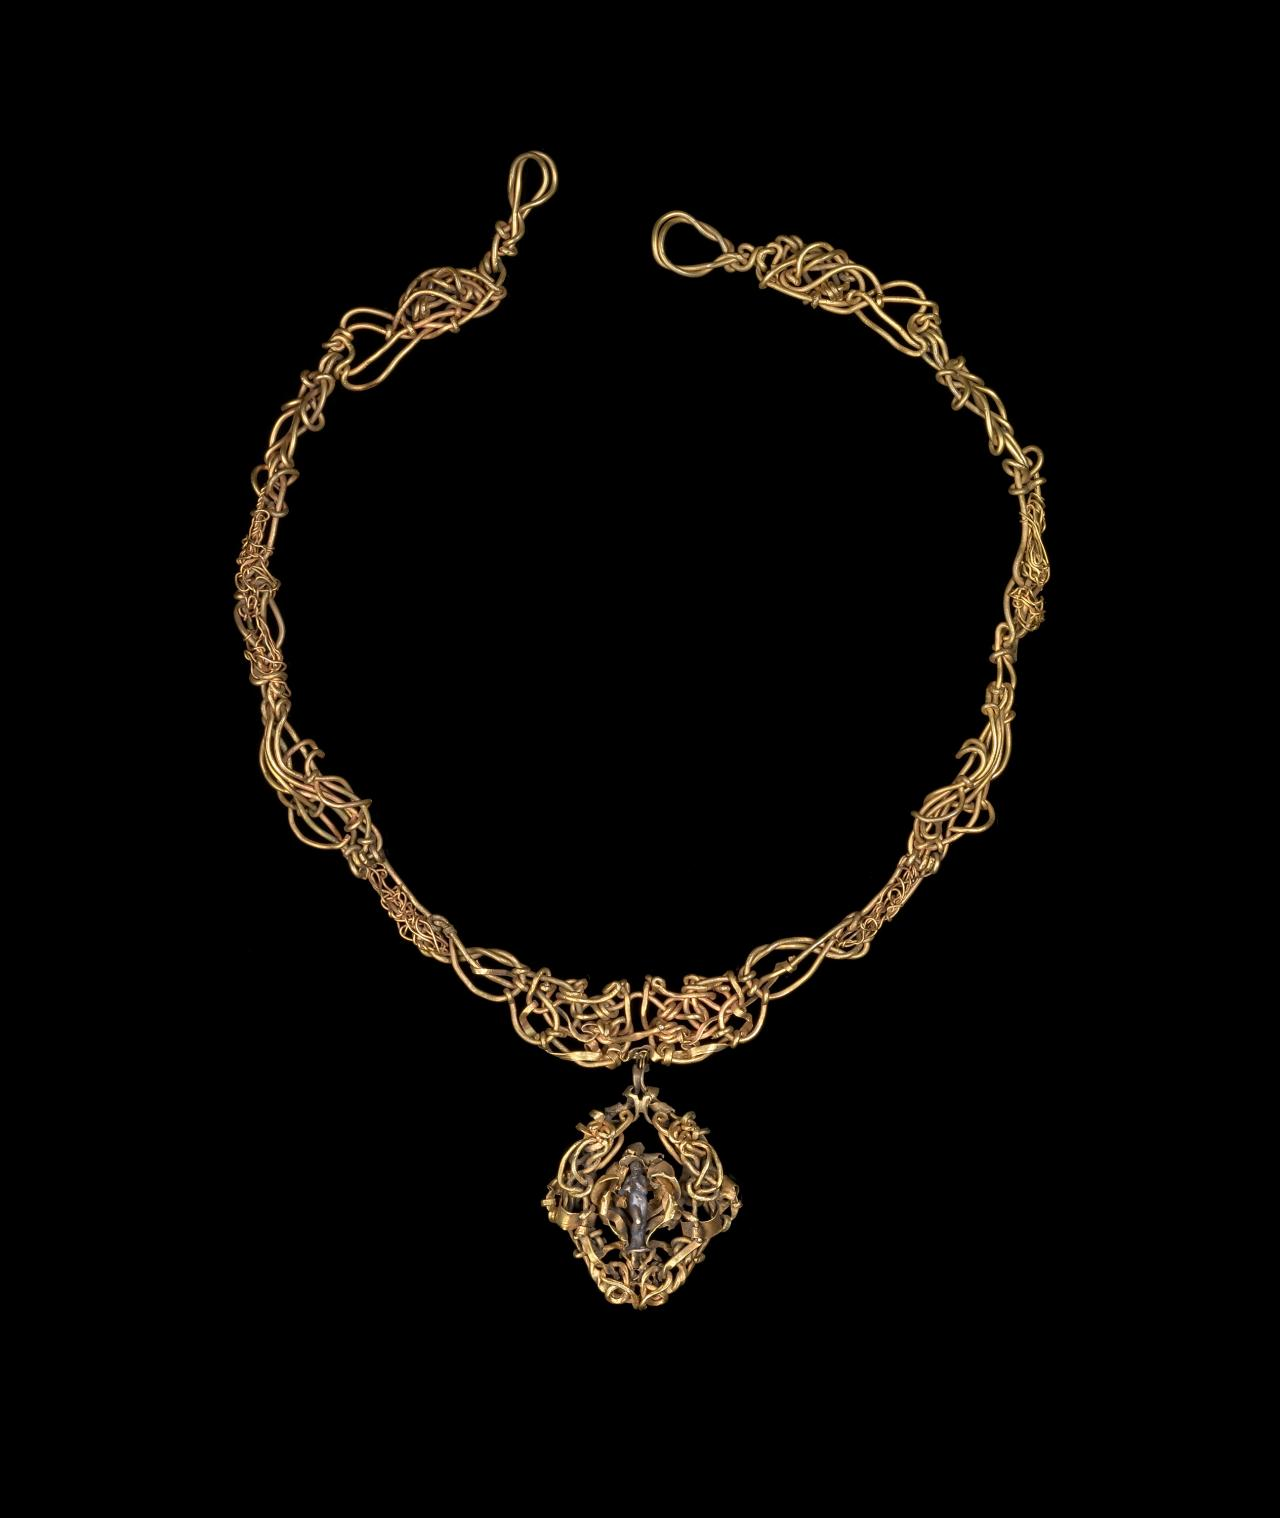 The Illingworth Necklace